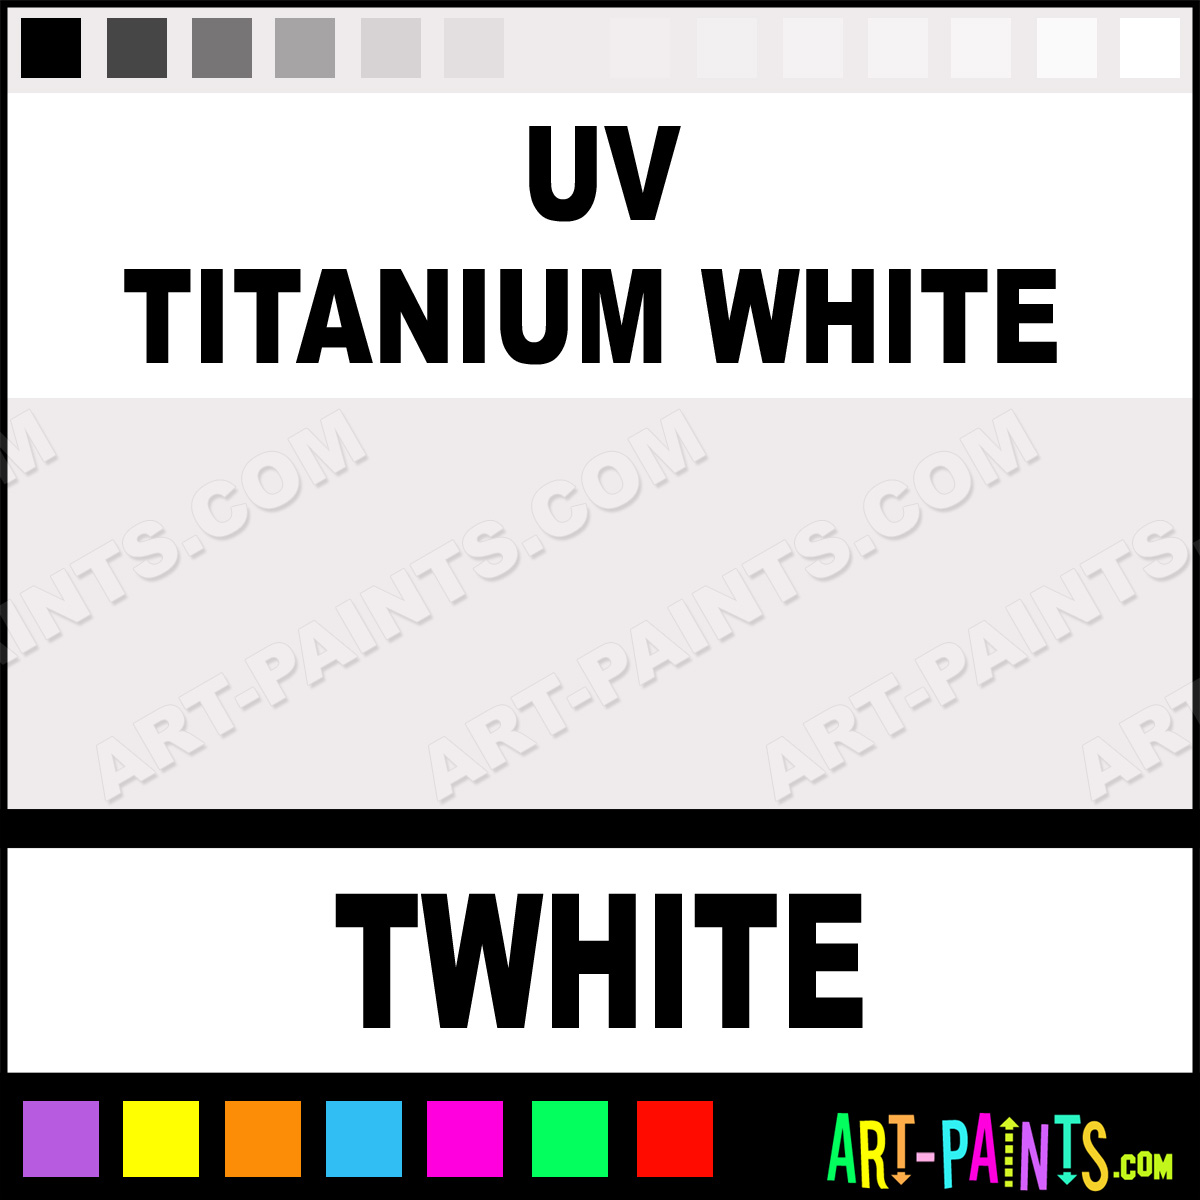 UV Titanium White Paint TWhite